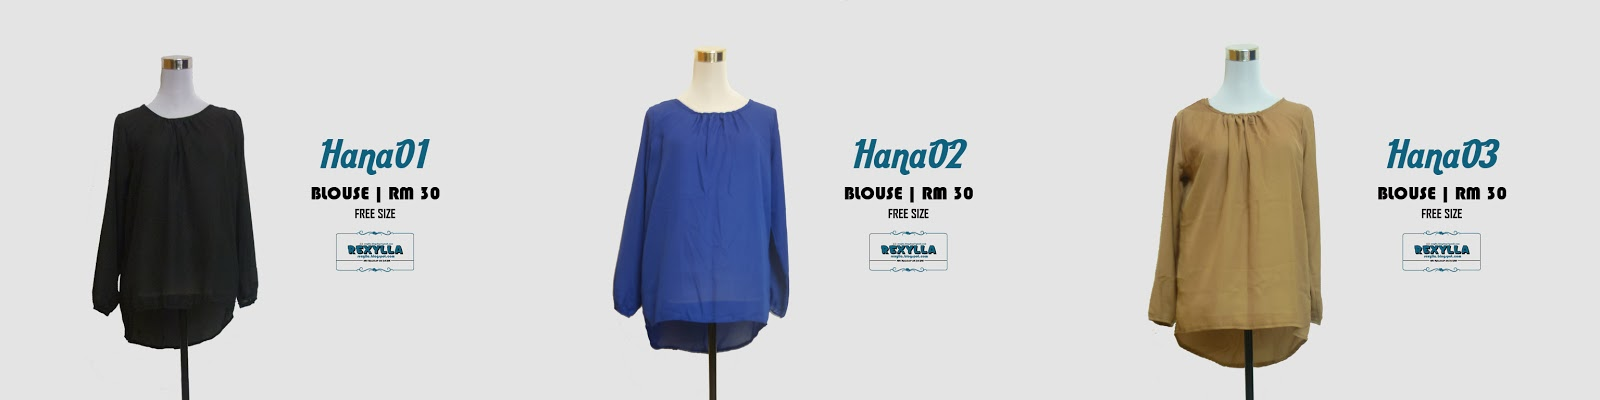 rexylla, blouse, basic